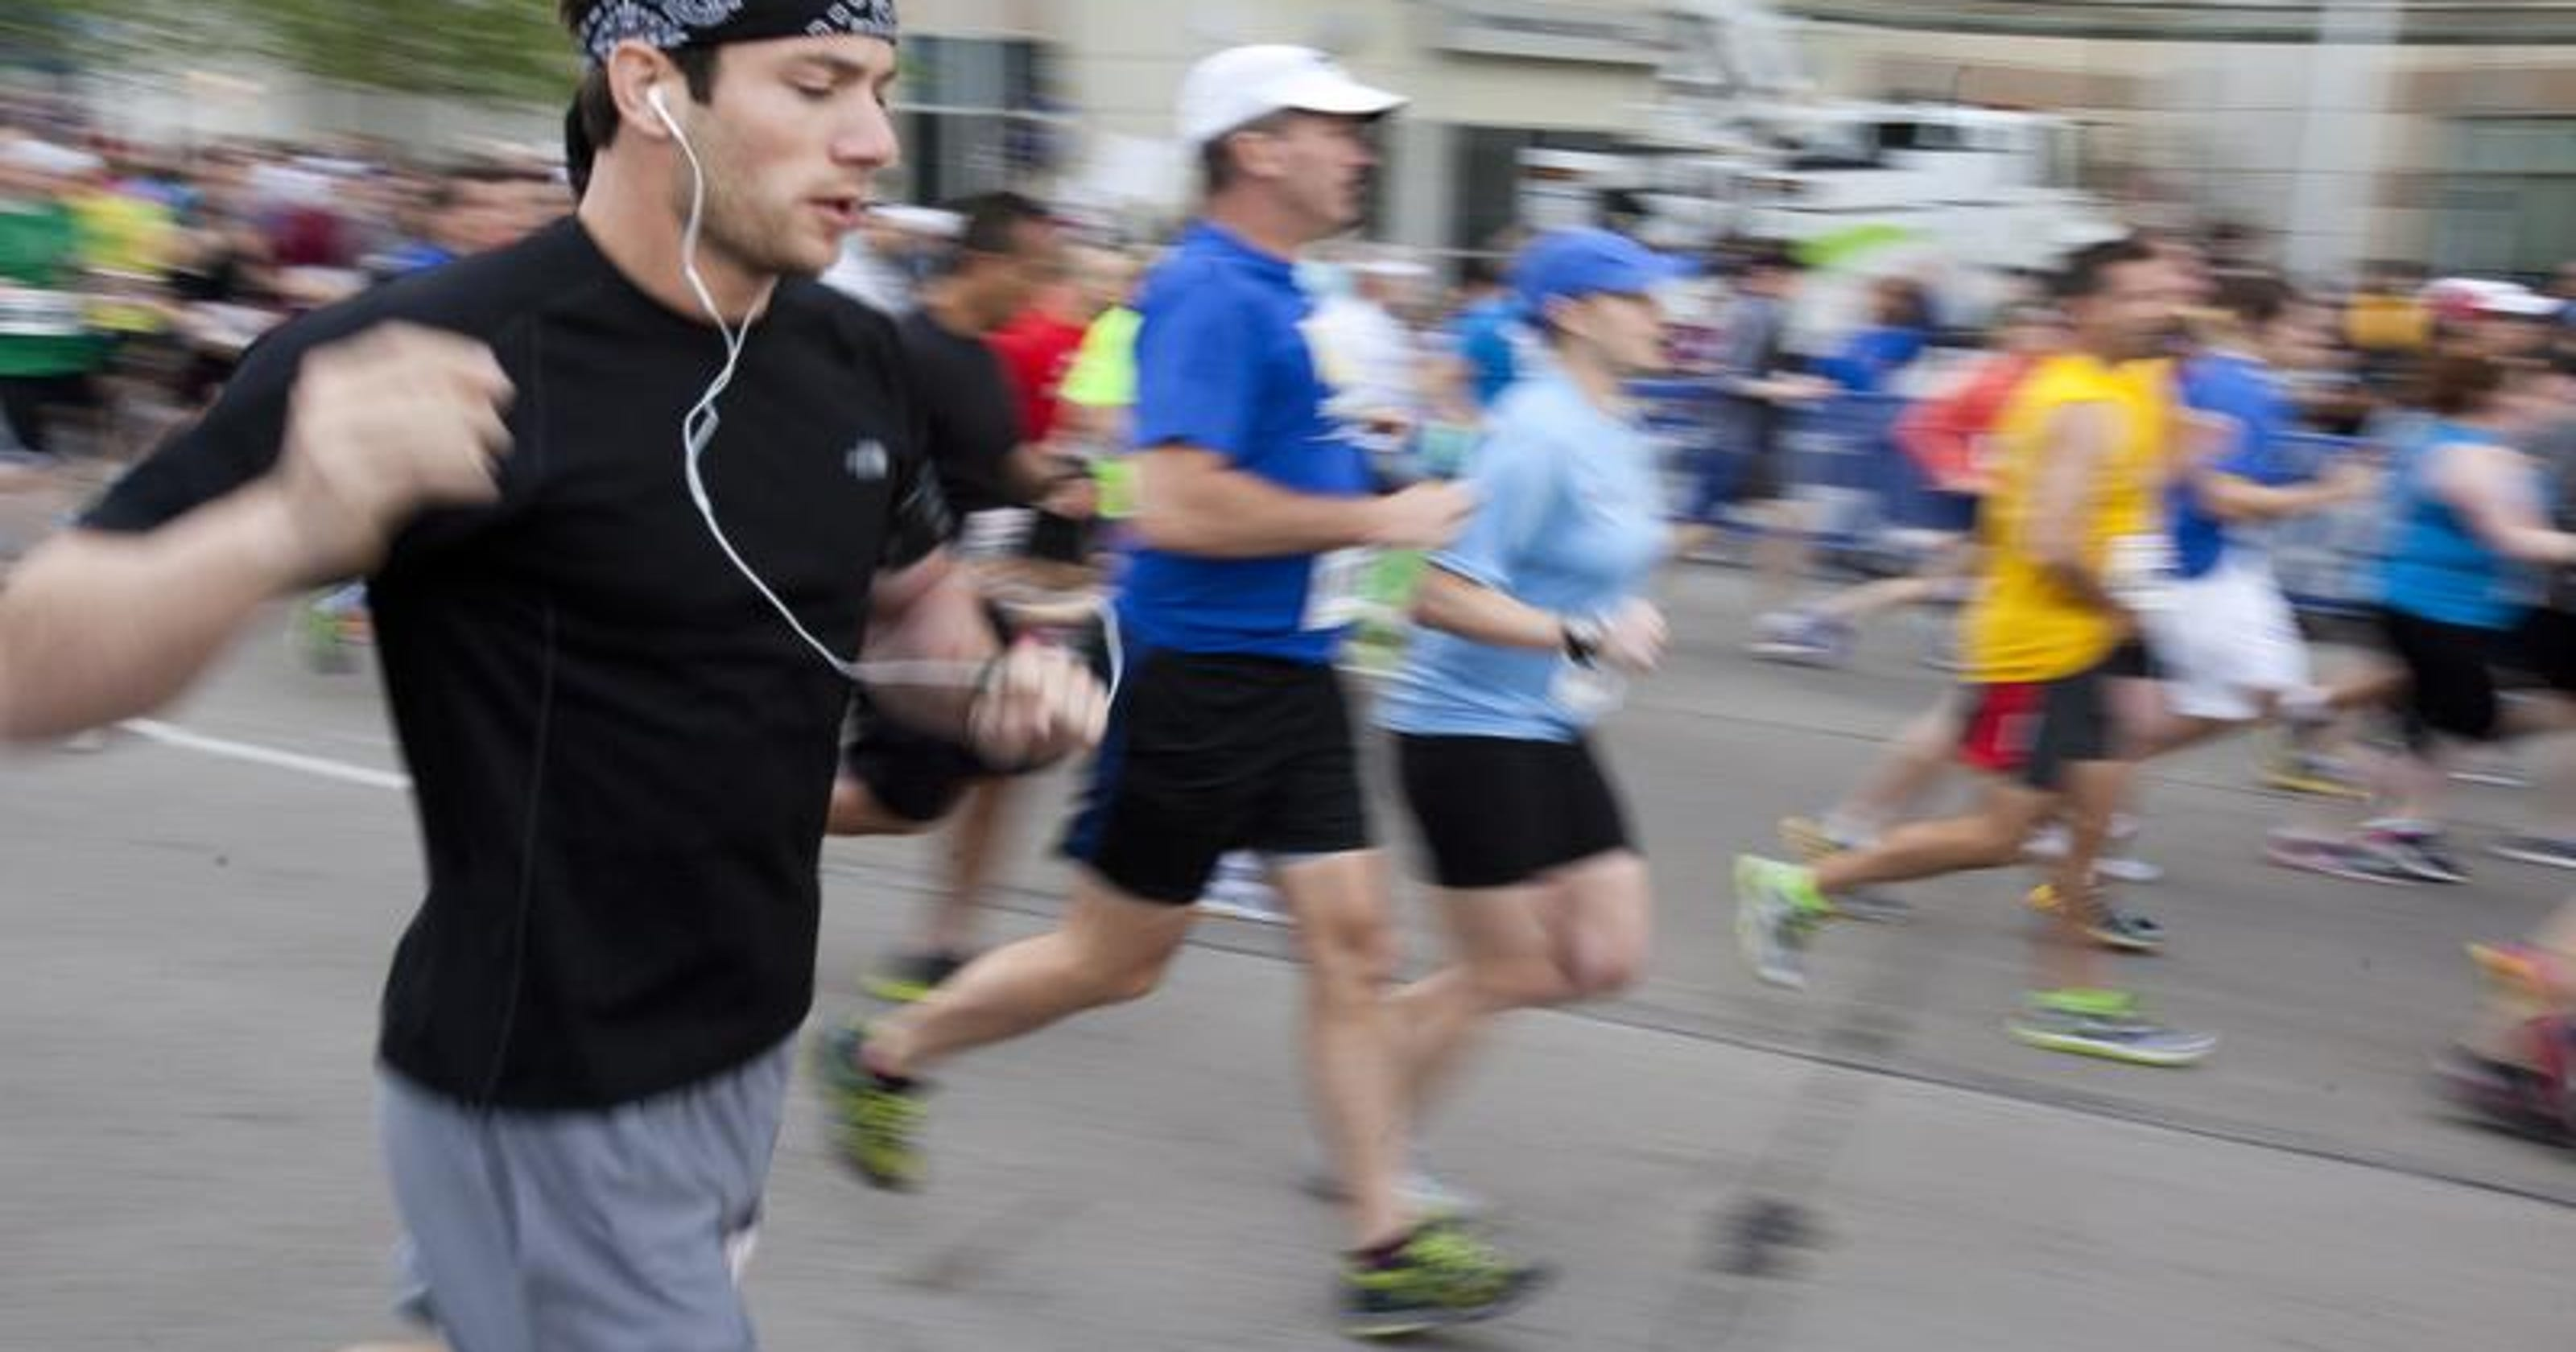 Whats New For The Mini Marathon In 2014